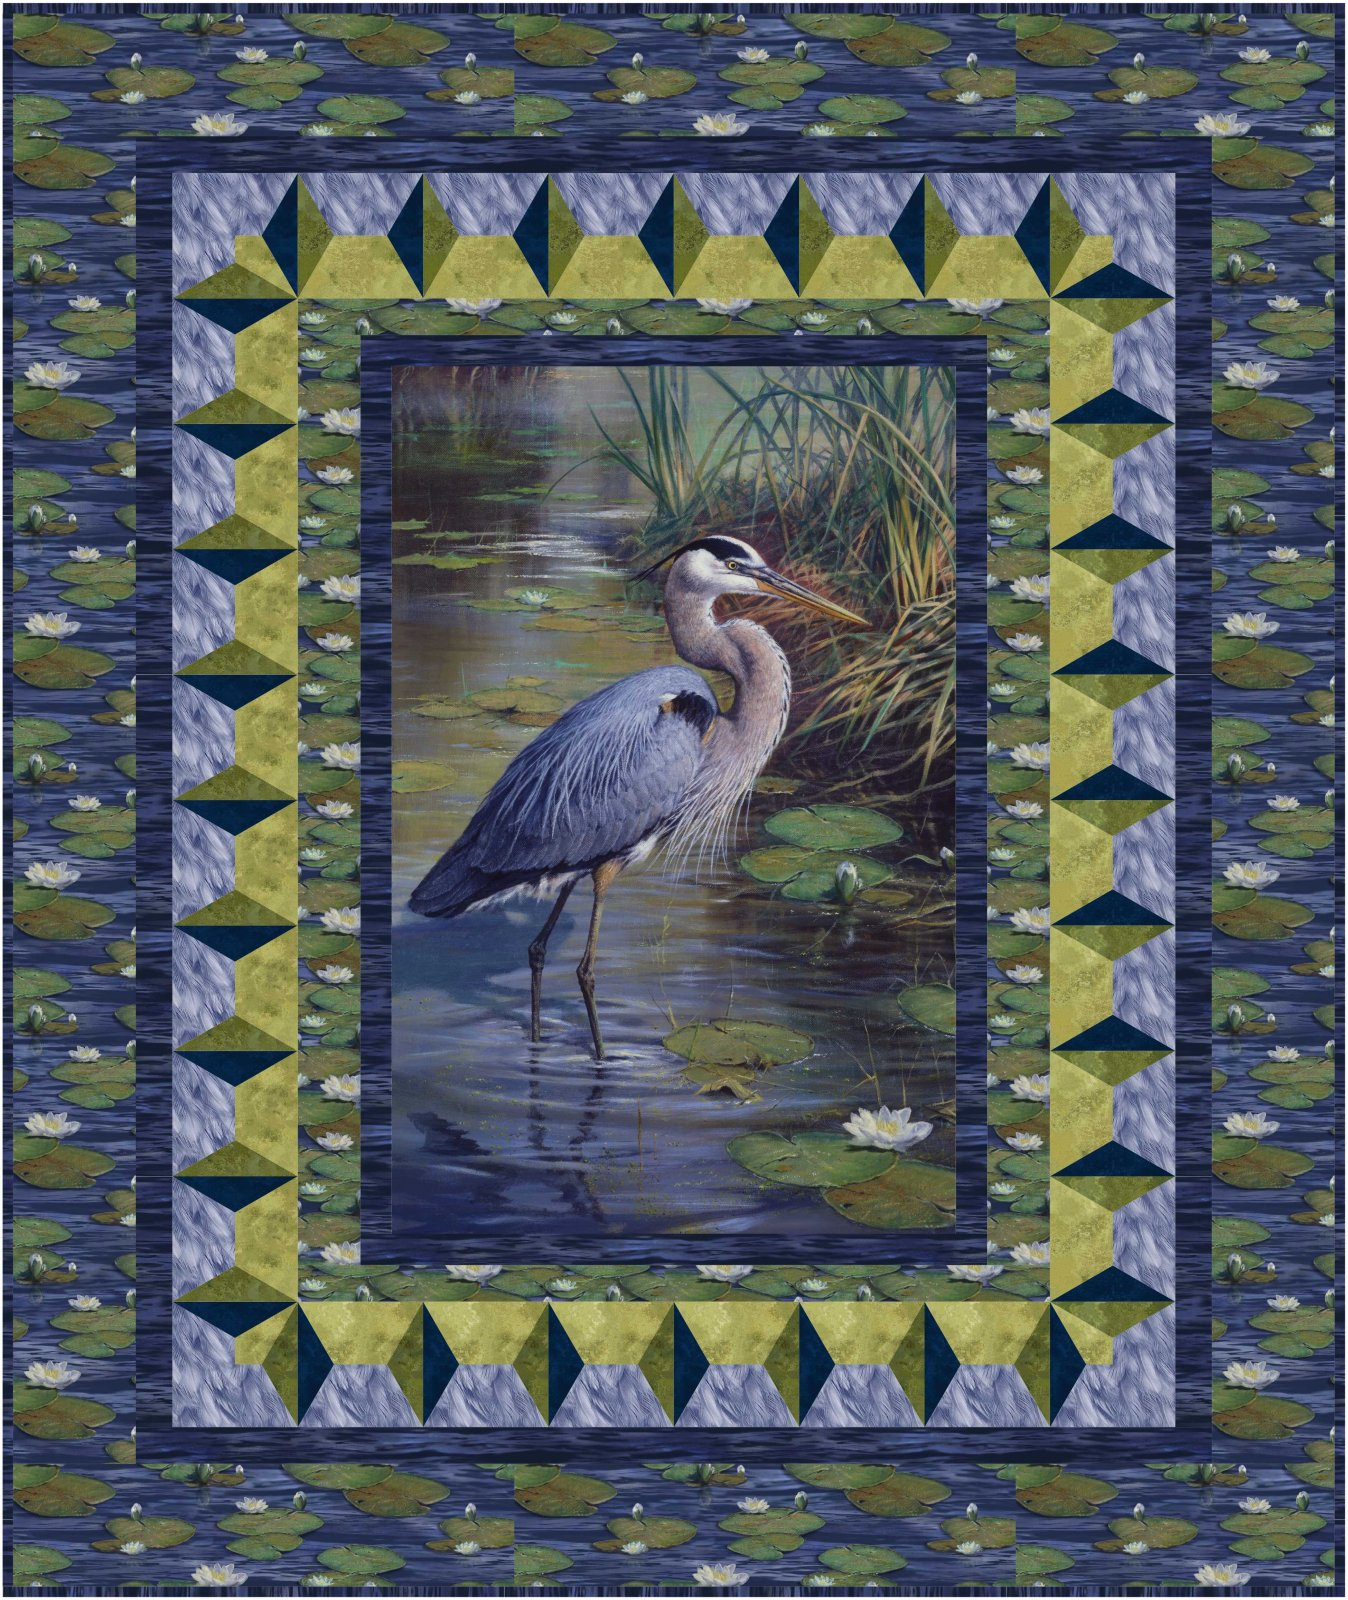 Through The Looking Glass 21 - Version 2 quilt kit - Throw size